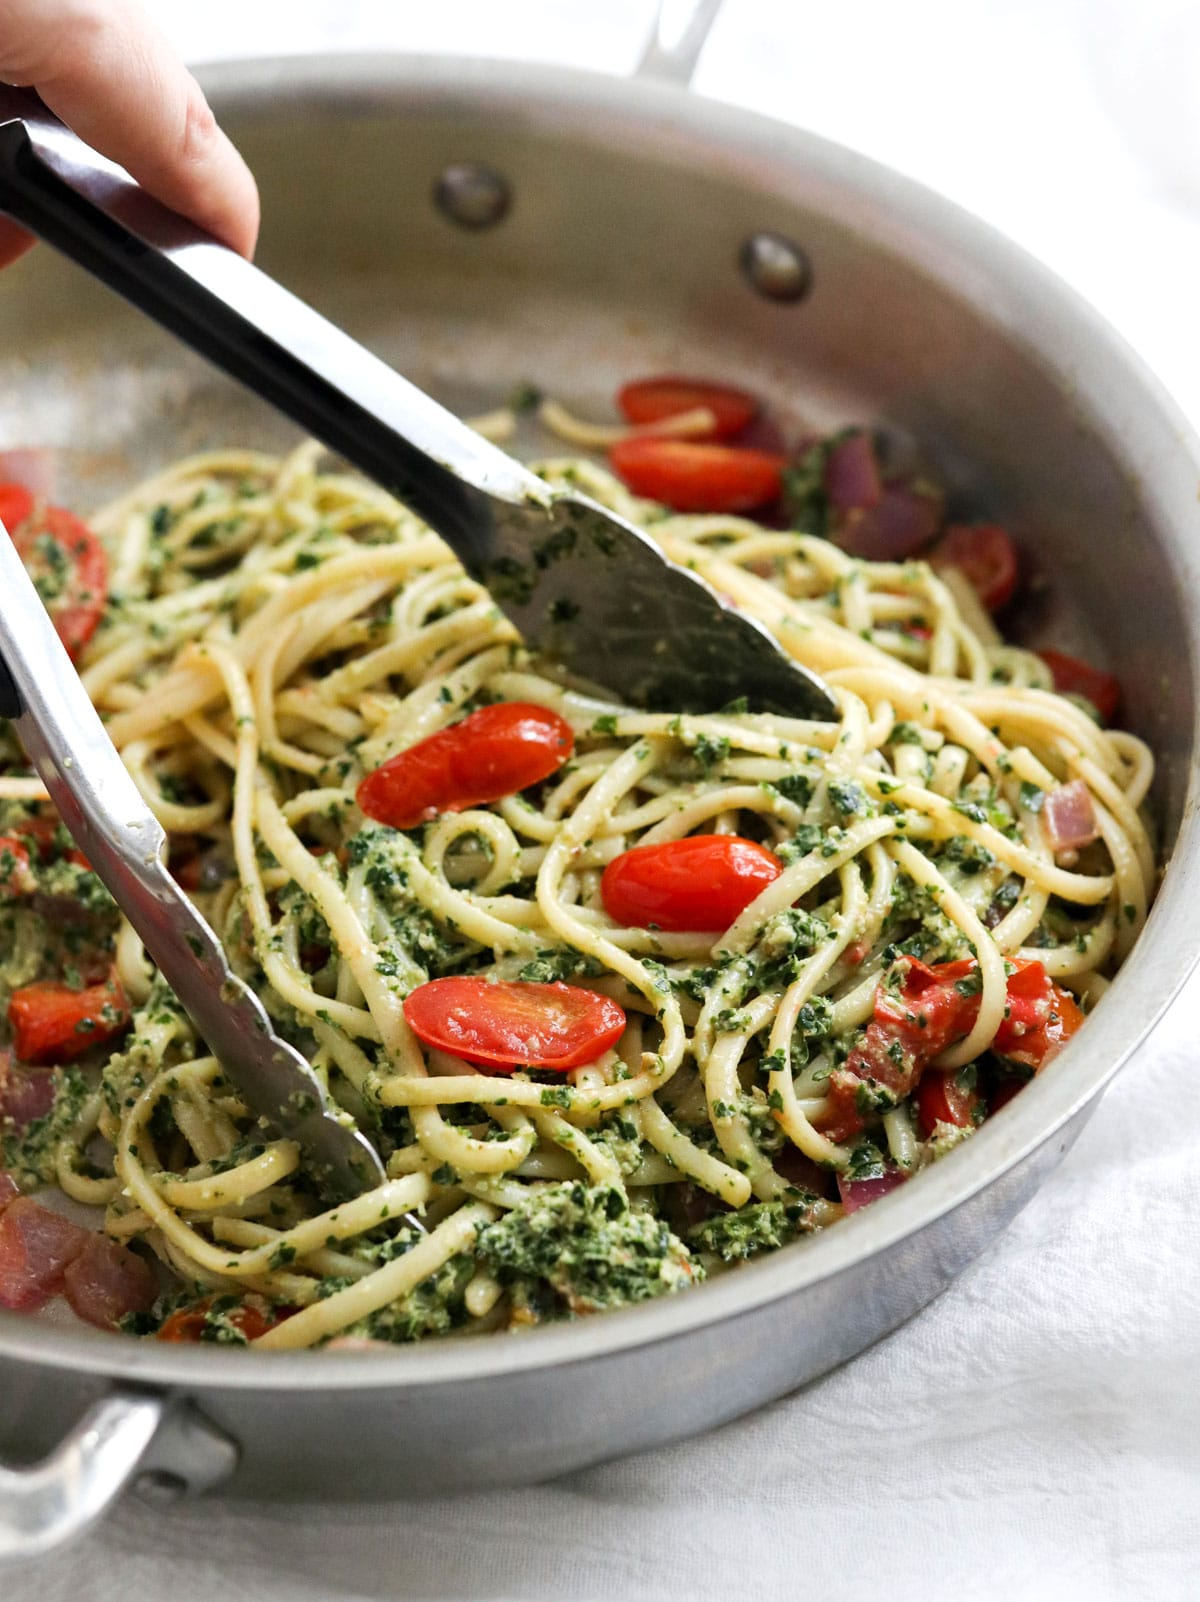 kale pesto tossed with noodles in pan